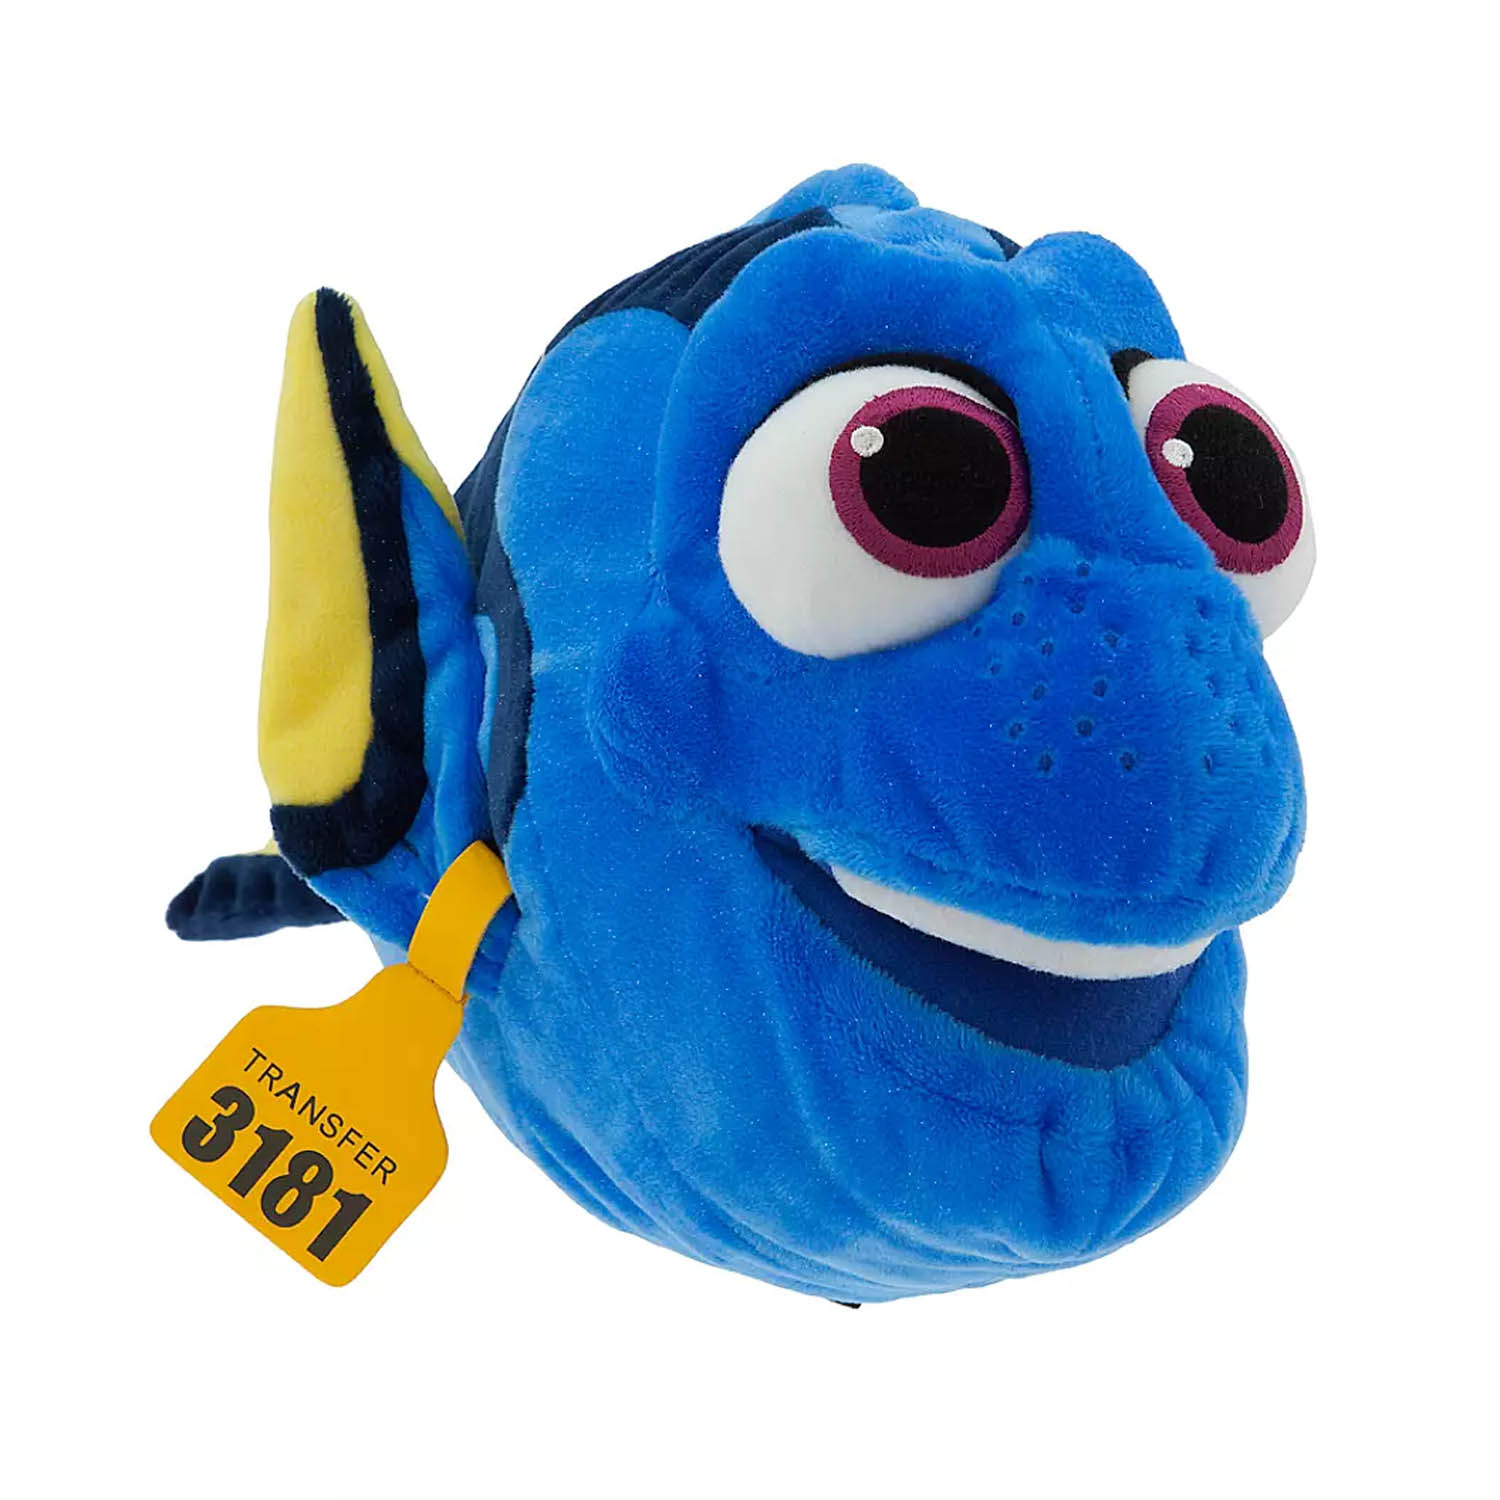 Finding Dory Large Plush Dory Soft Toy Disney Store Exclusive